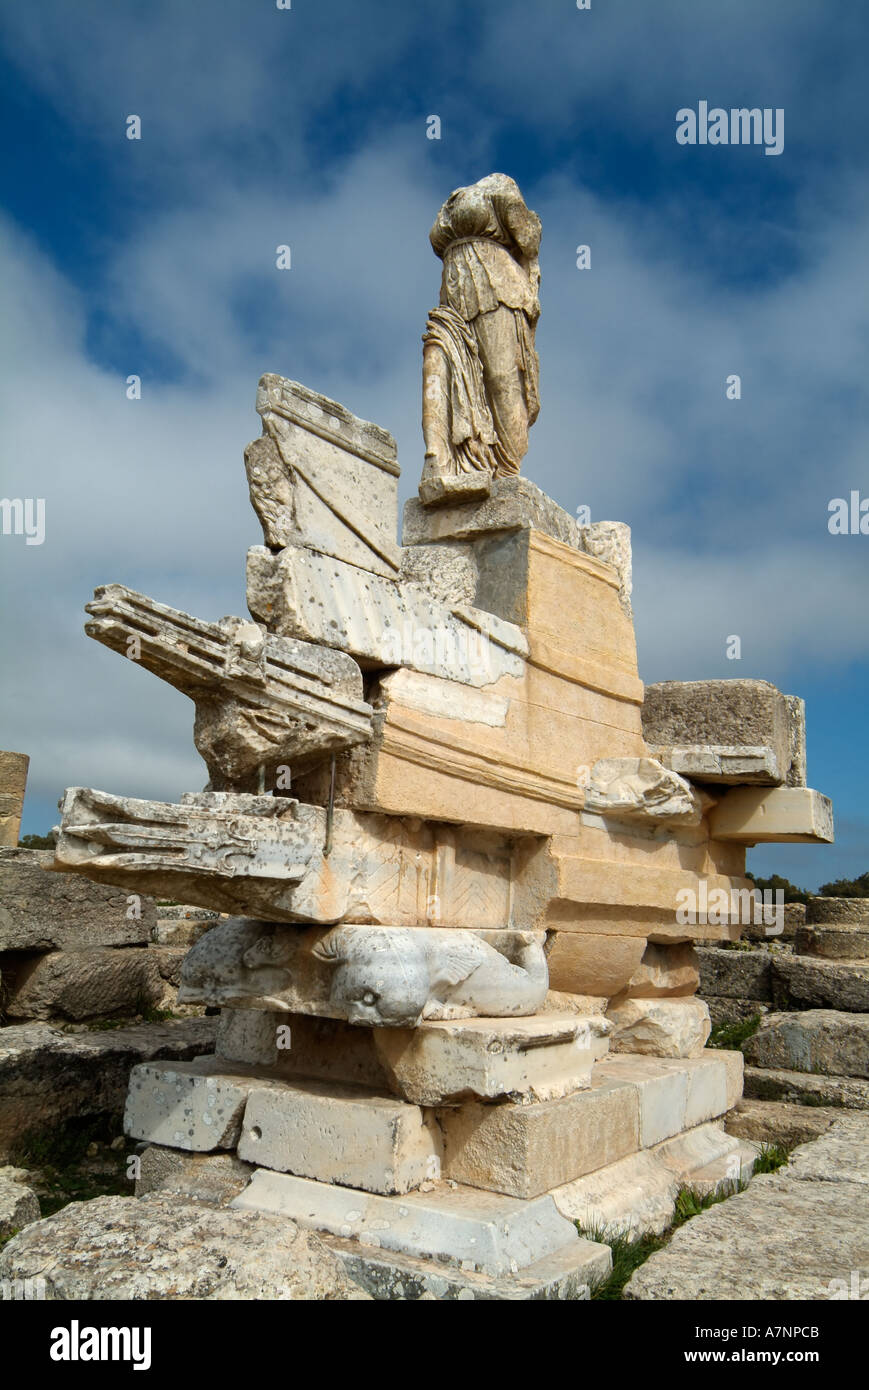 Naval monument, Agora, Cyrene Greek / Roman ruins, Libya Stock Photo